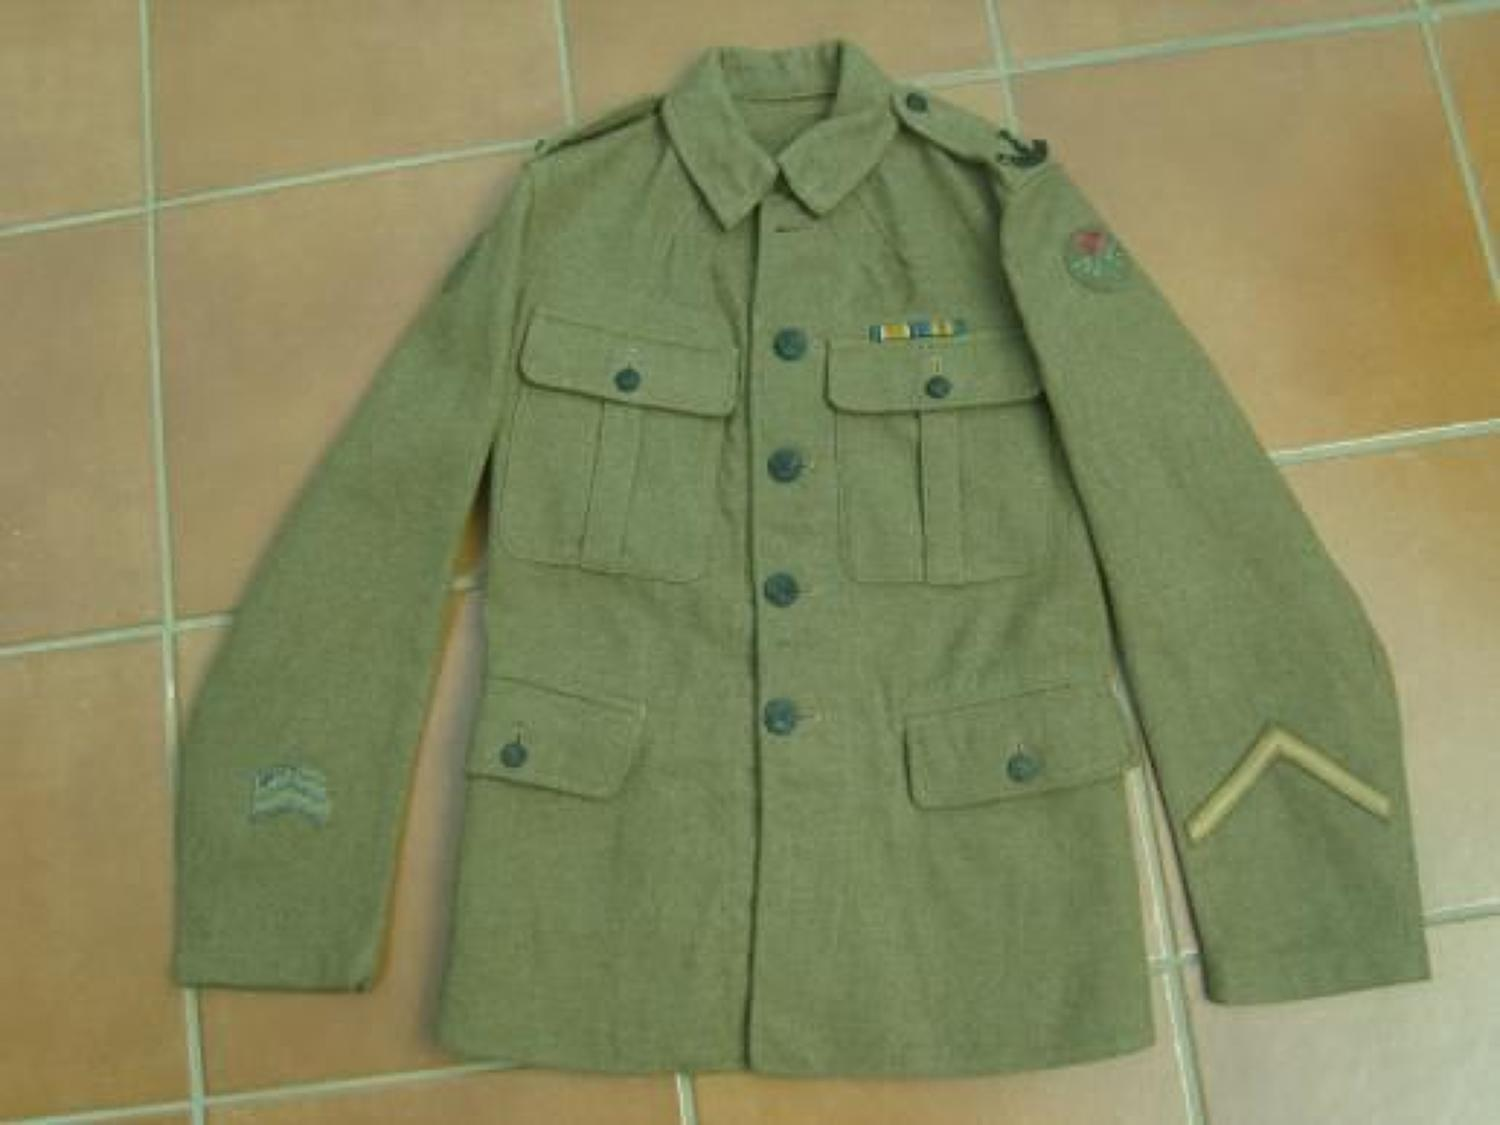 WW1 BRITISH OTHER RANKS TUNIC TO 1/5th SOUTH LANCASHIRE REGIMENT